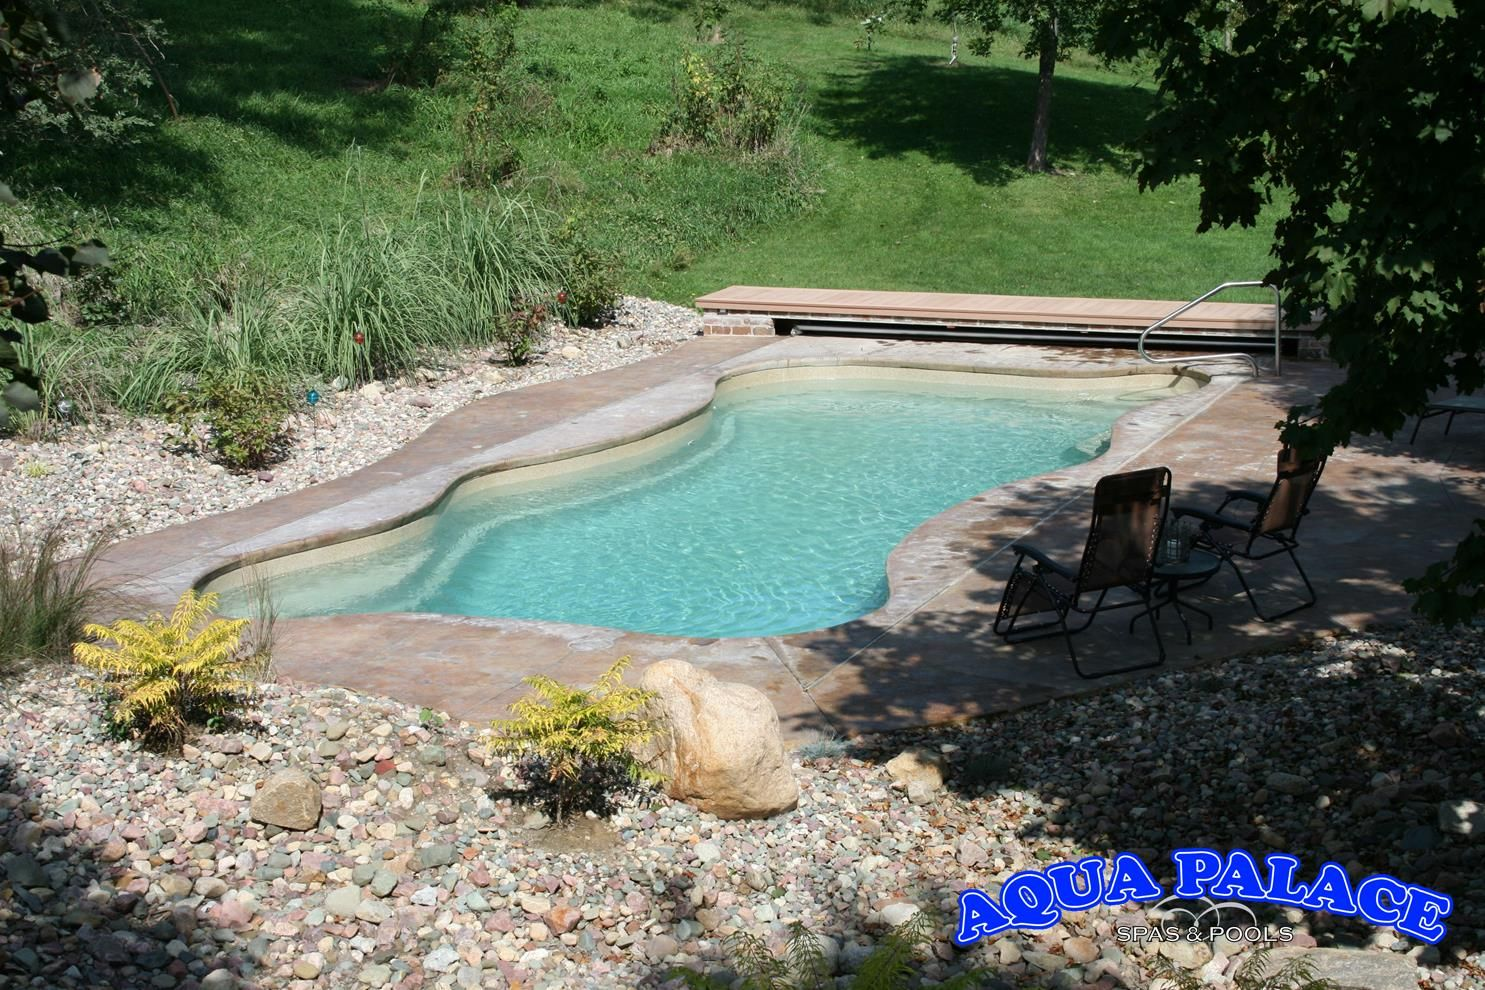 Fiberglass Pool With Light Colored Shell Makes Water Very Crisp And Clean Always Custom Auto